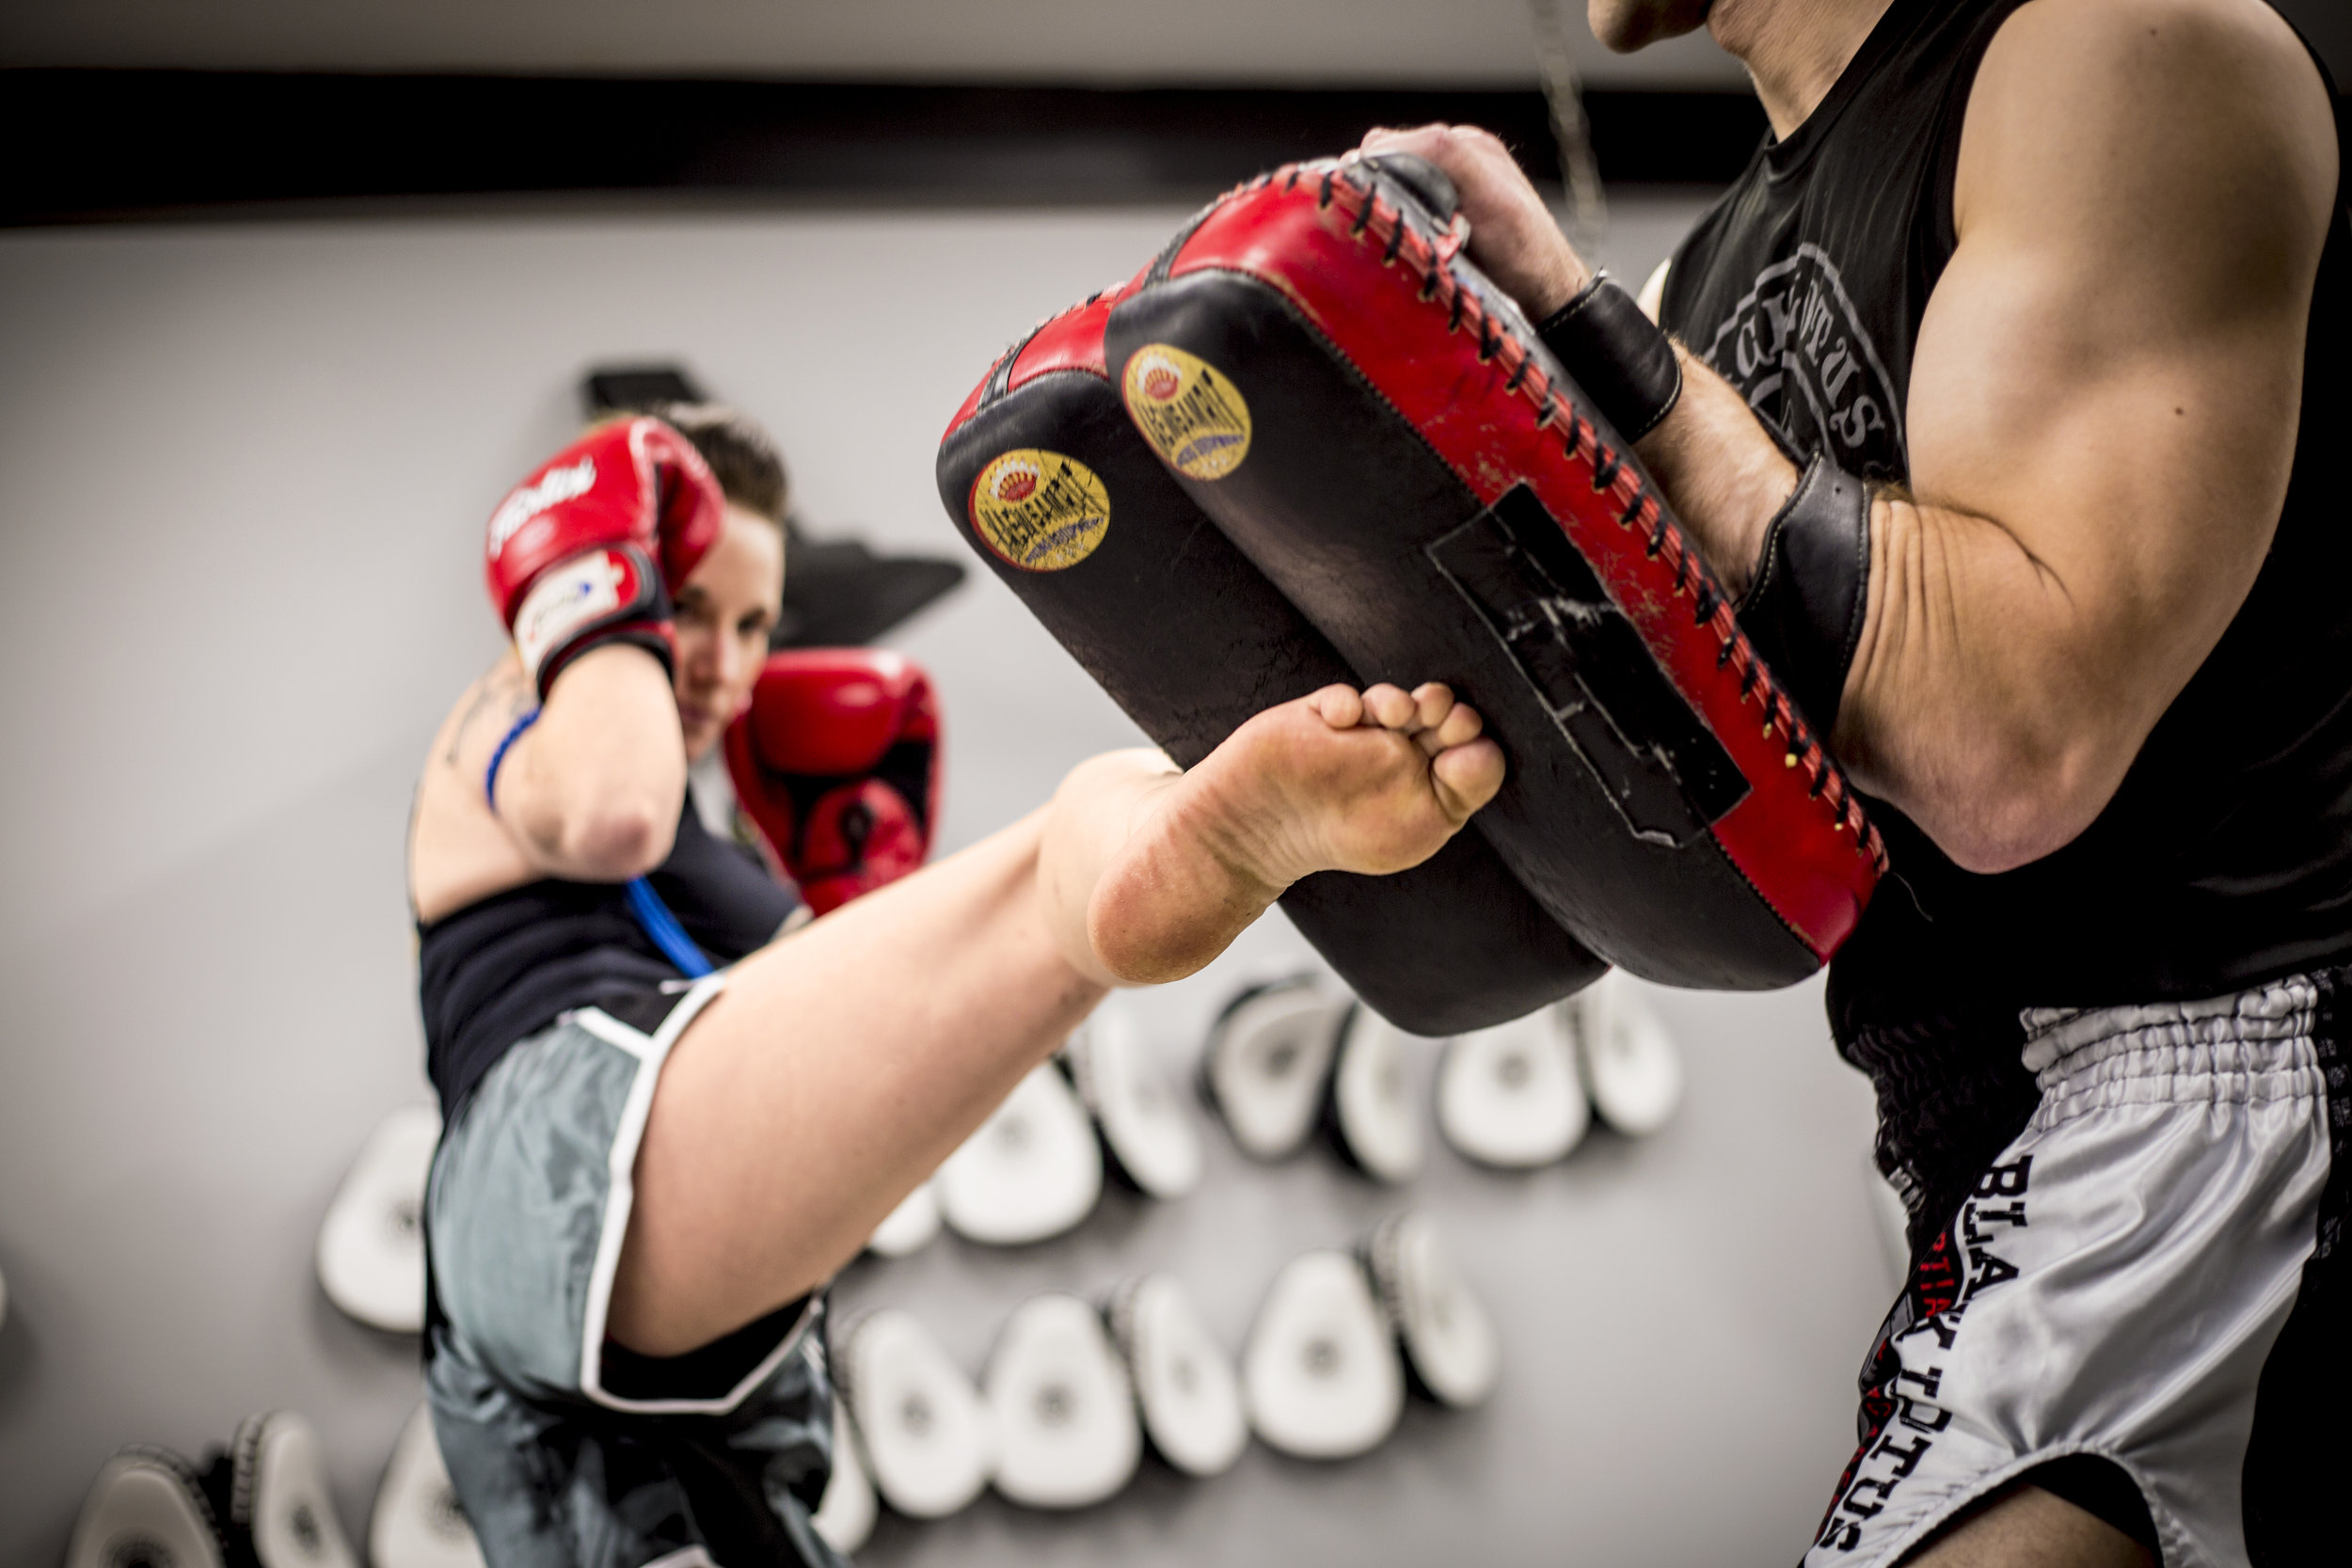 Private lessons - Private lessons are available for all of our programs and more! Kickboxing, Muay Thai, Jiu Jitsu, Self Defense, Karate, SanShou, Judo, Boxing, and general Fitness/Weight Loss; for adults, children or small groups. Contact us for rates. Be sure to ask about our package deals for extra savings!